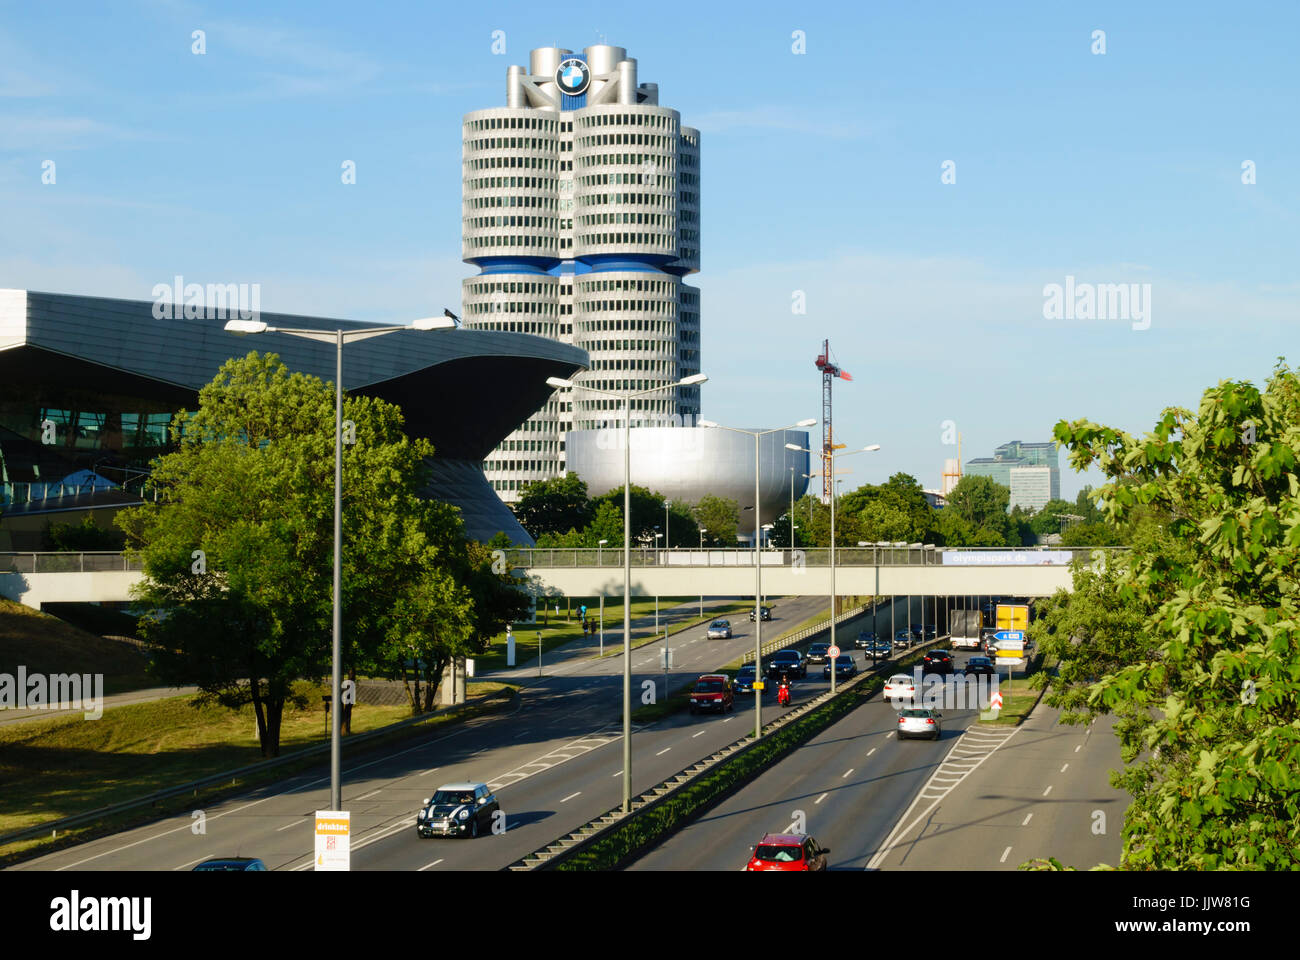 BMW Tower and BMW Welt buildings, Munich, Bavaria, Germany - Stock Image